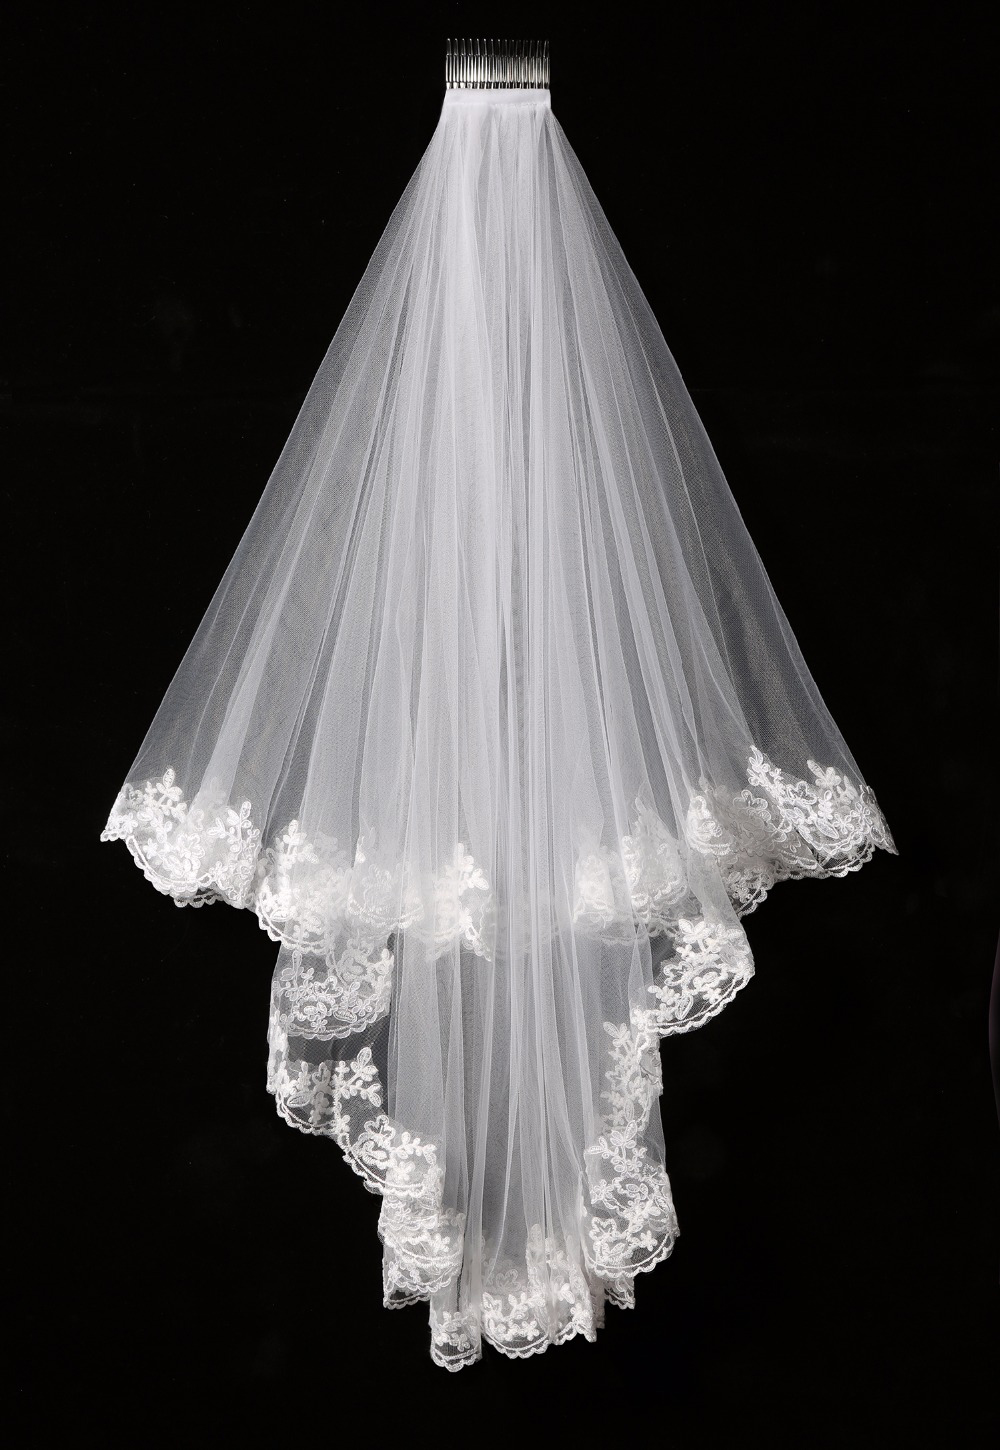 Elegant Cheap White/Ivory Elegant Beauty Two Layers Short  Net Tulle Bride Veil 1.5m Long Lace Edge Tulle Veil For Wedding SLV02 2016 beauty hj weave beauty cheap peruvian lace frontal closure 100